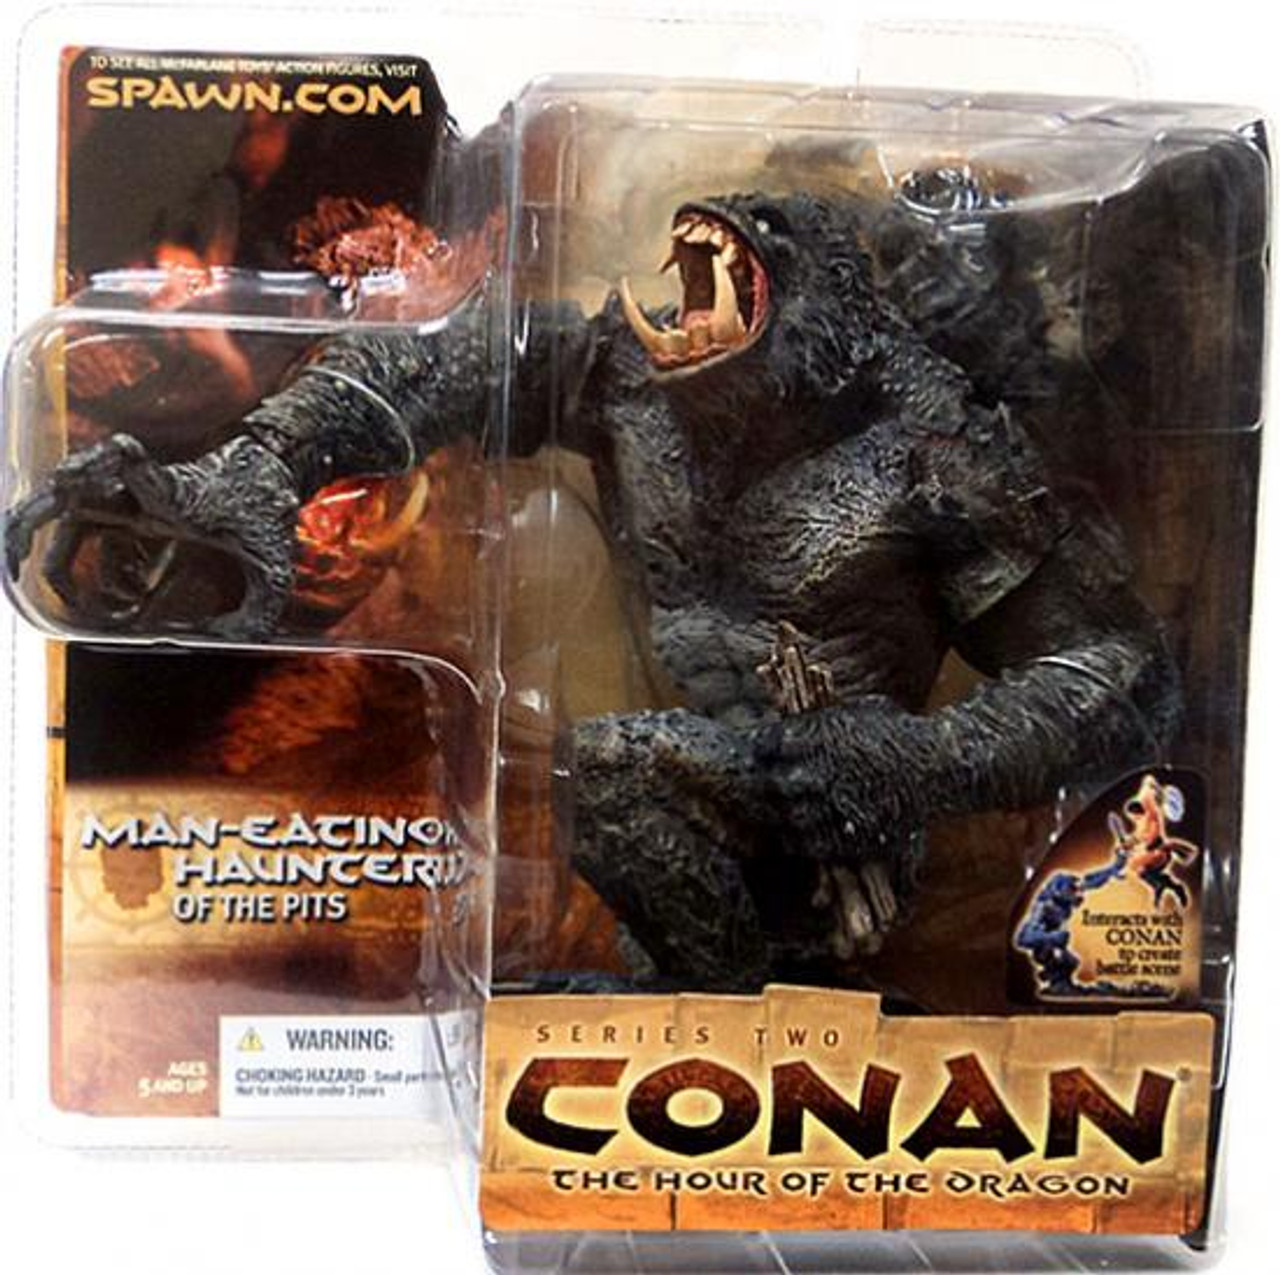 McFarlane Toys Conan the Barbarian The Hour of the Dragon Series 2 Man-Eating Haunter of the Pits Action Figure